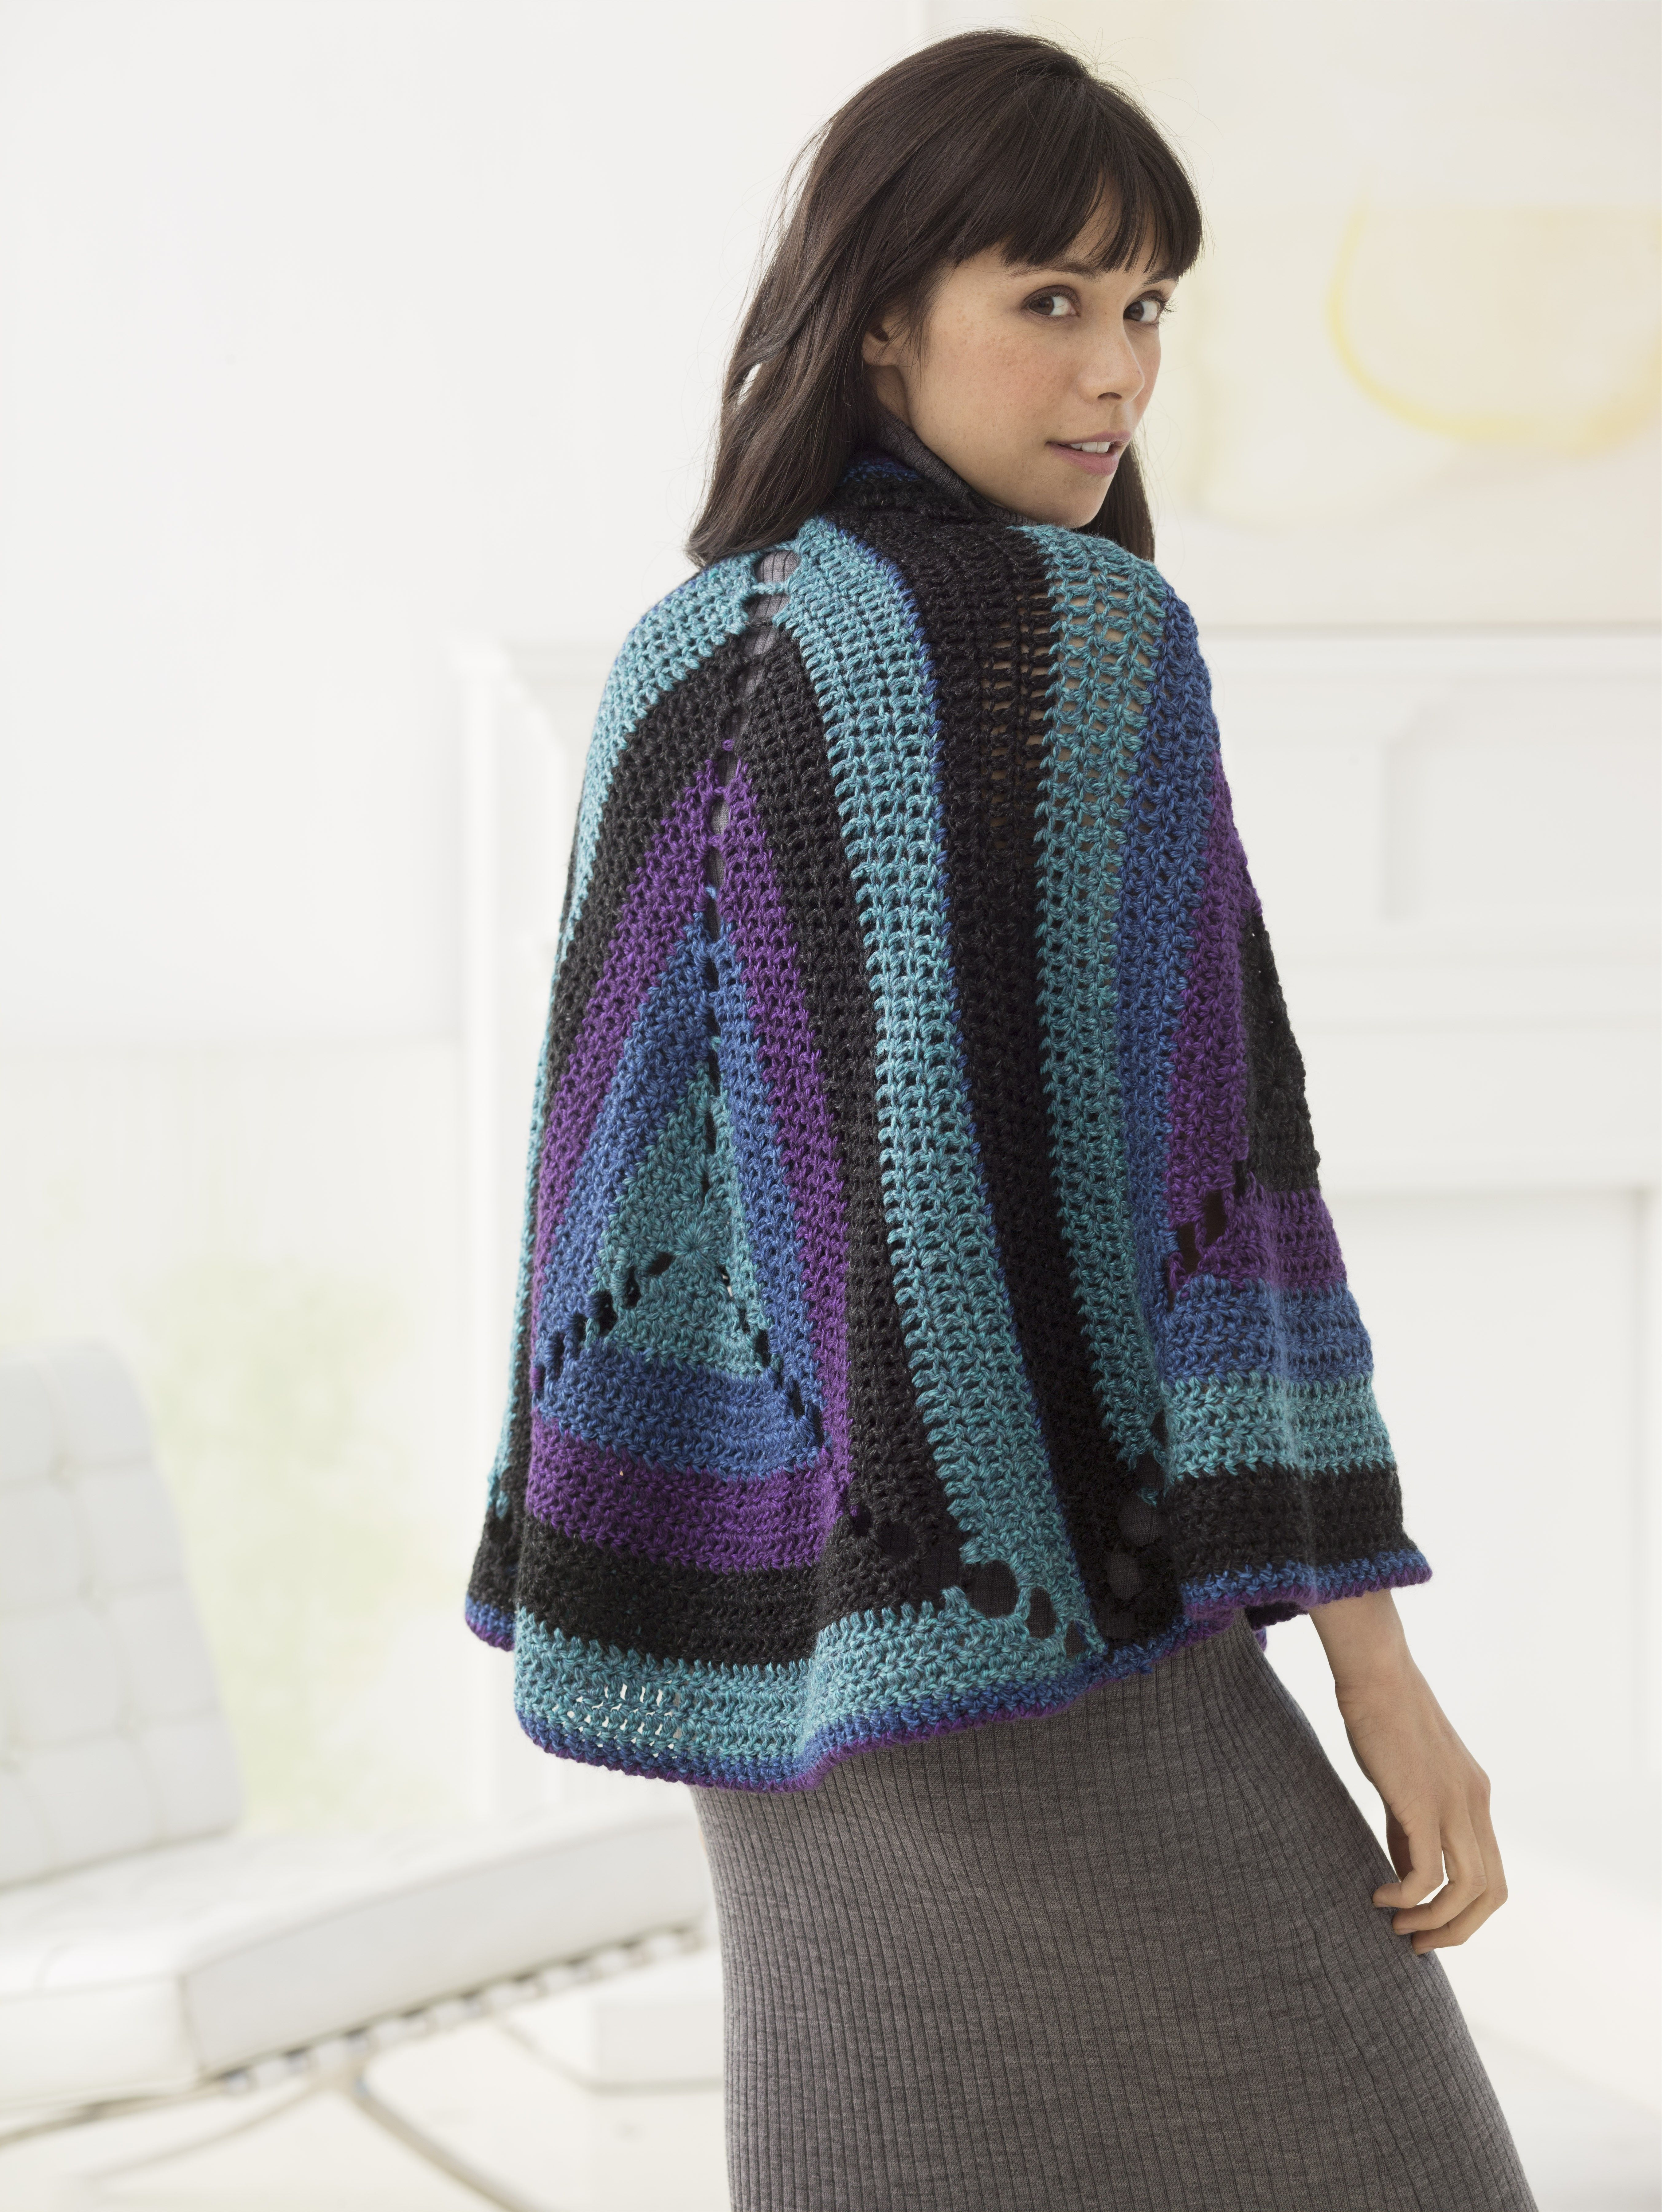 Granny Triangles Shawl (Crochet) - Patterns - Lion Brand Yarn ...